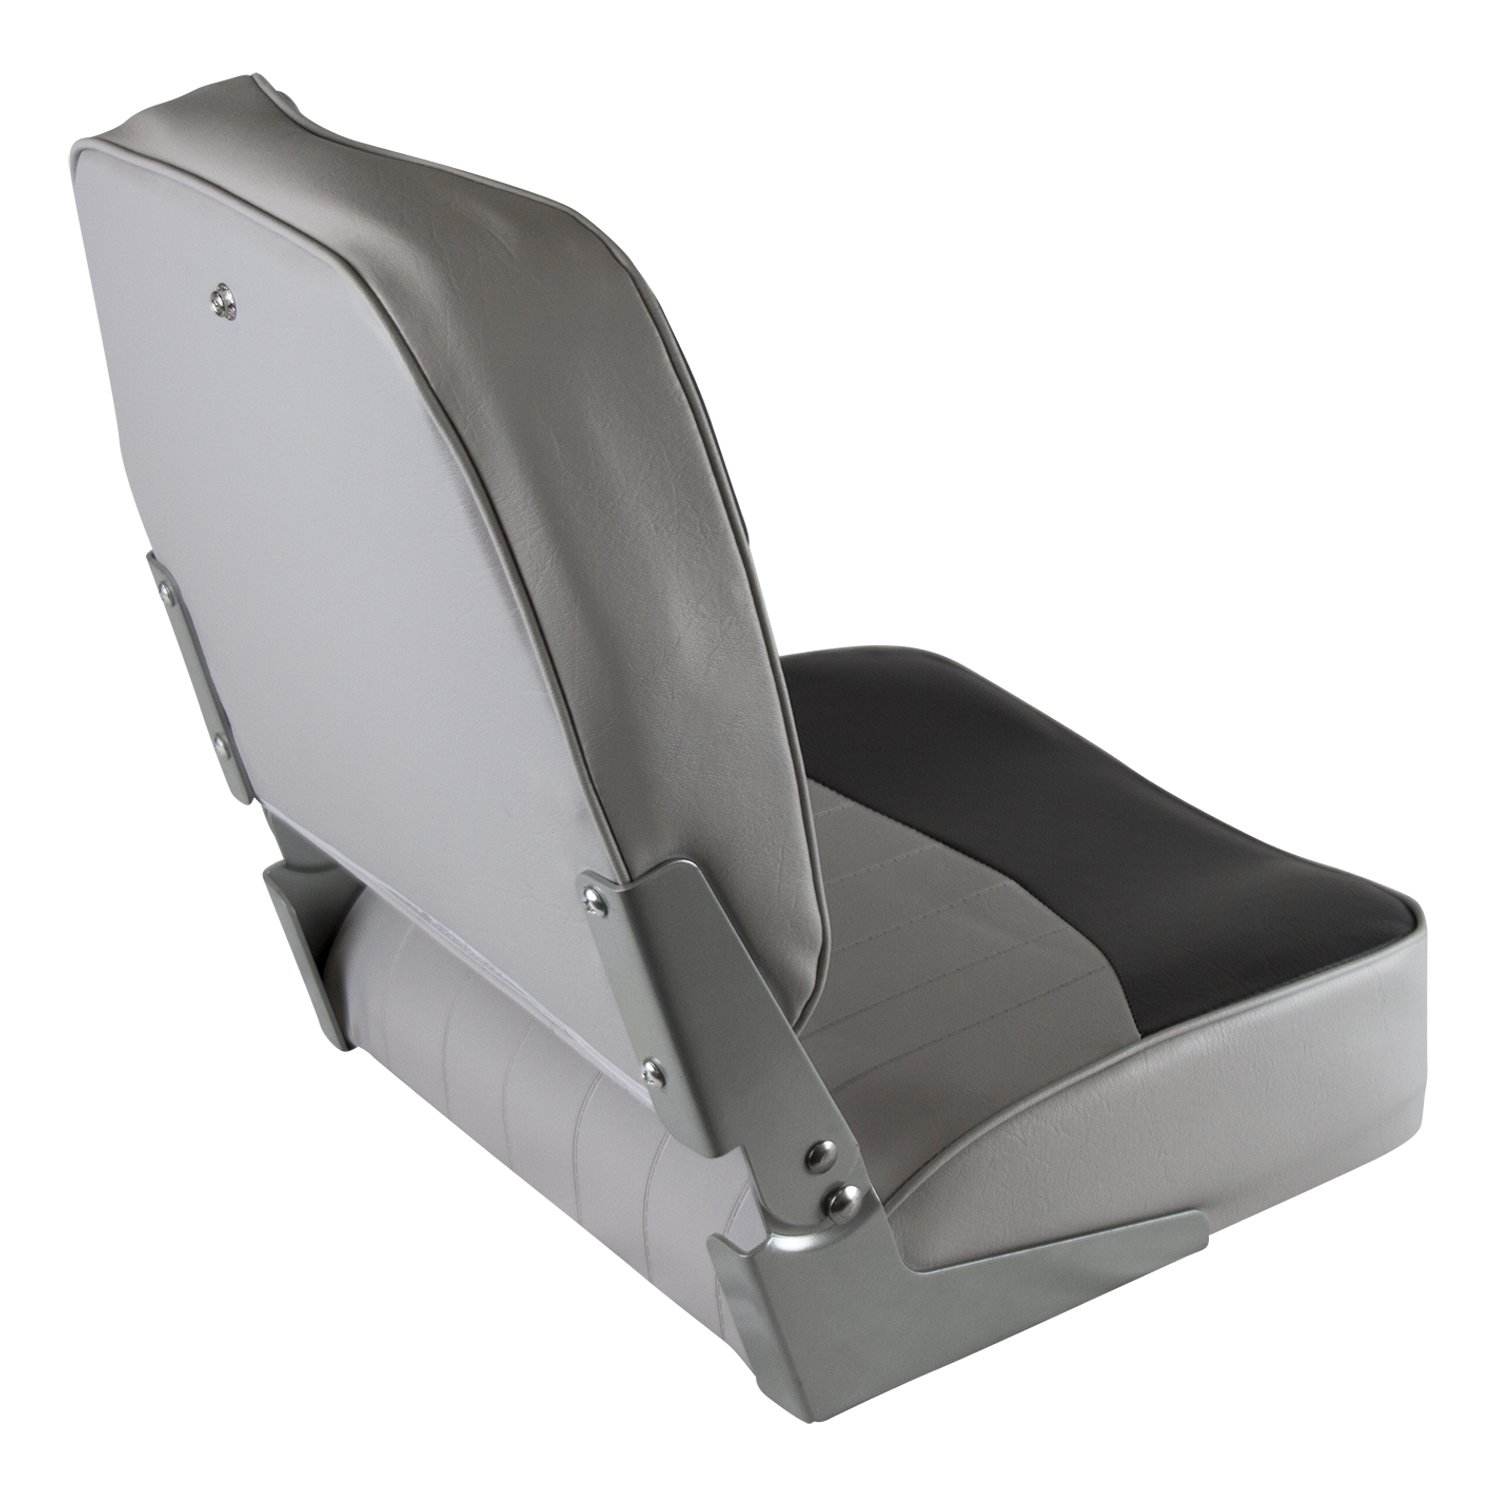 Wise 8WD734PLS-661 Low Back Boat Seat, Grey/Red by Wise (Image #2)